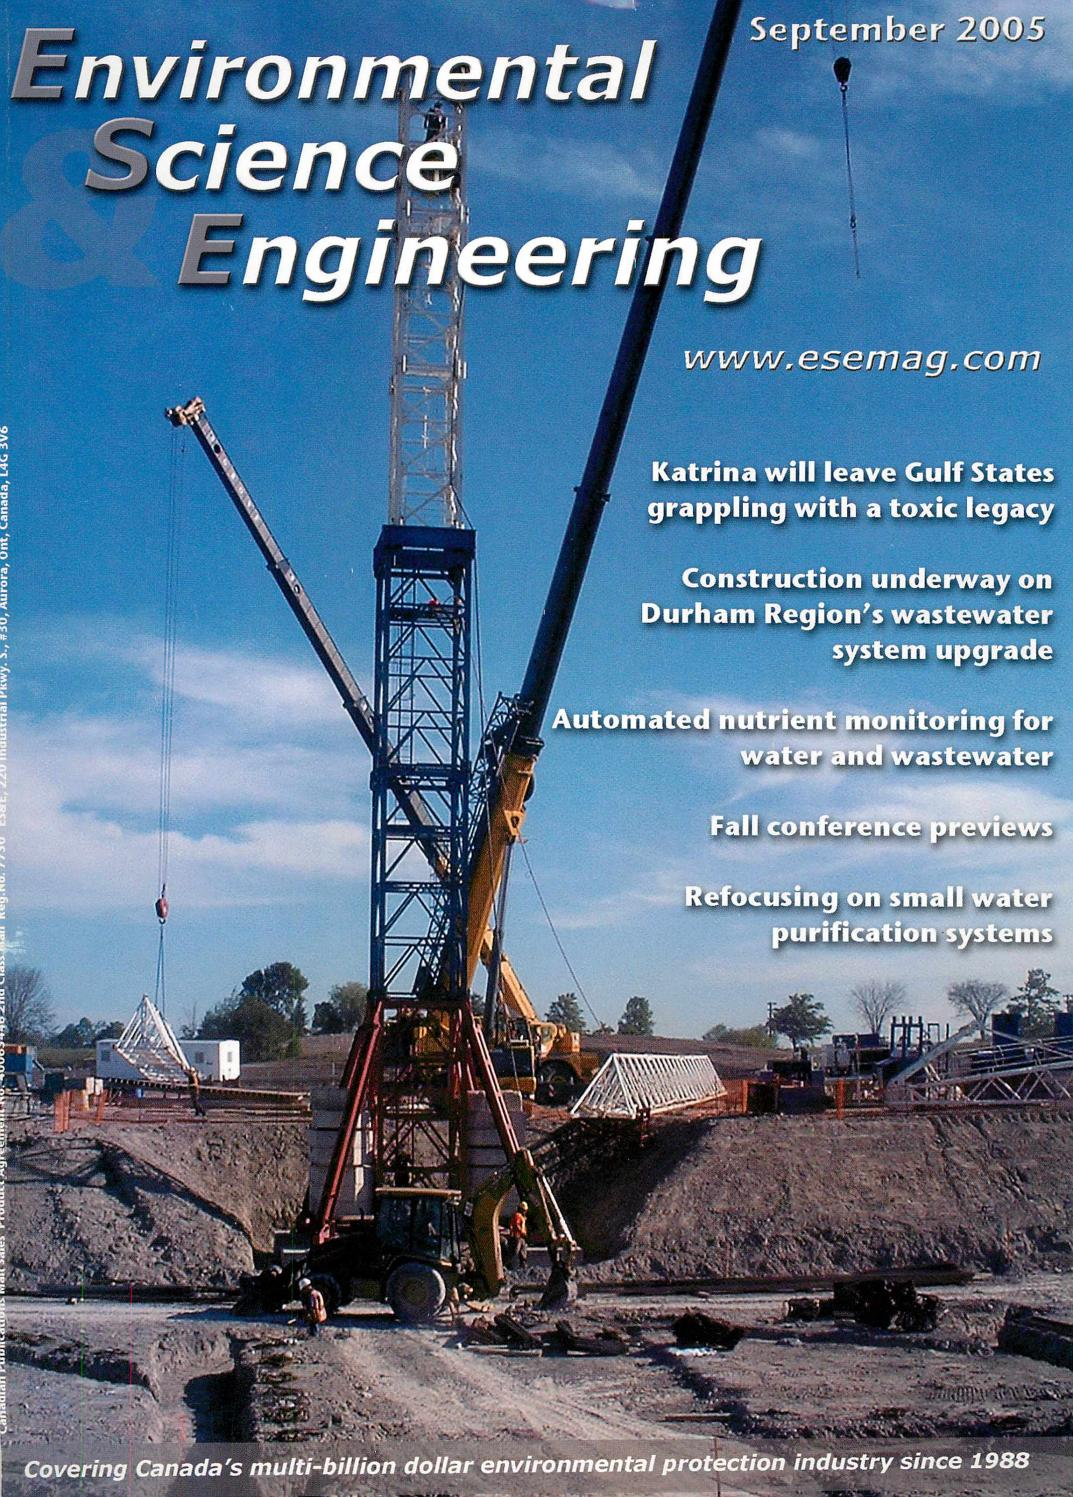 Environmental Science Engineering Magazine Esemag September 2005 Further Capping Casing And Wiring Also Denso Tape On Fax Cable By Issuu